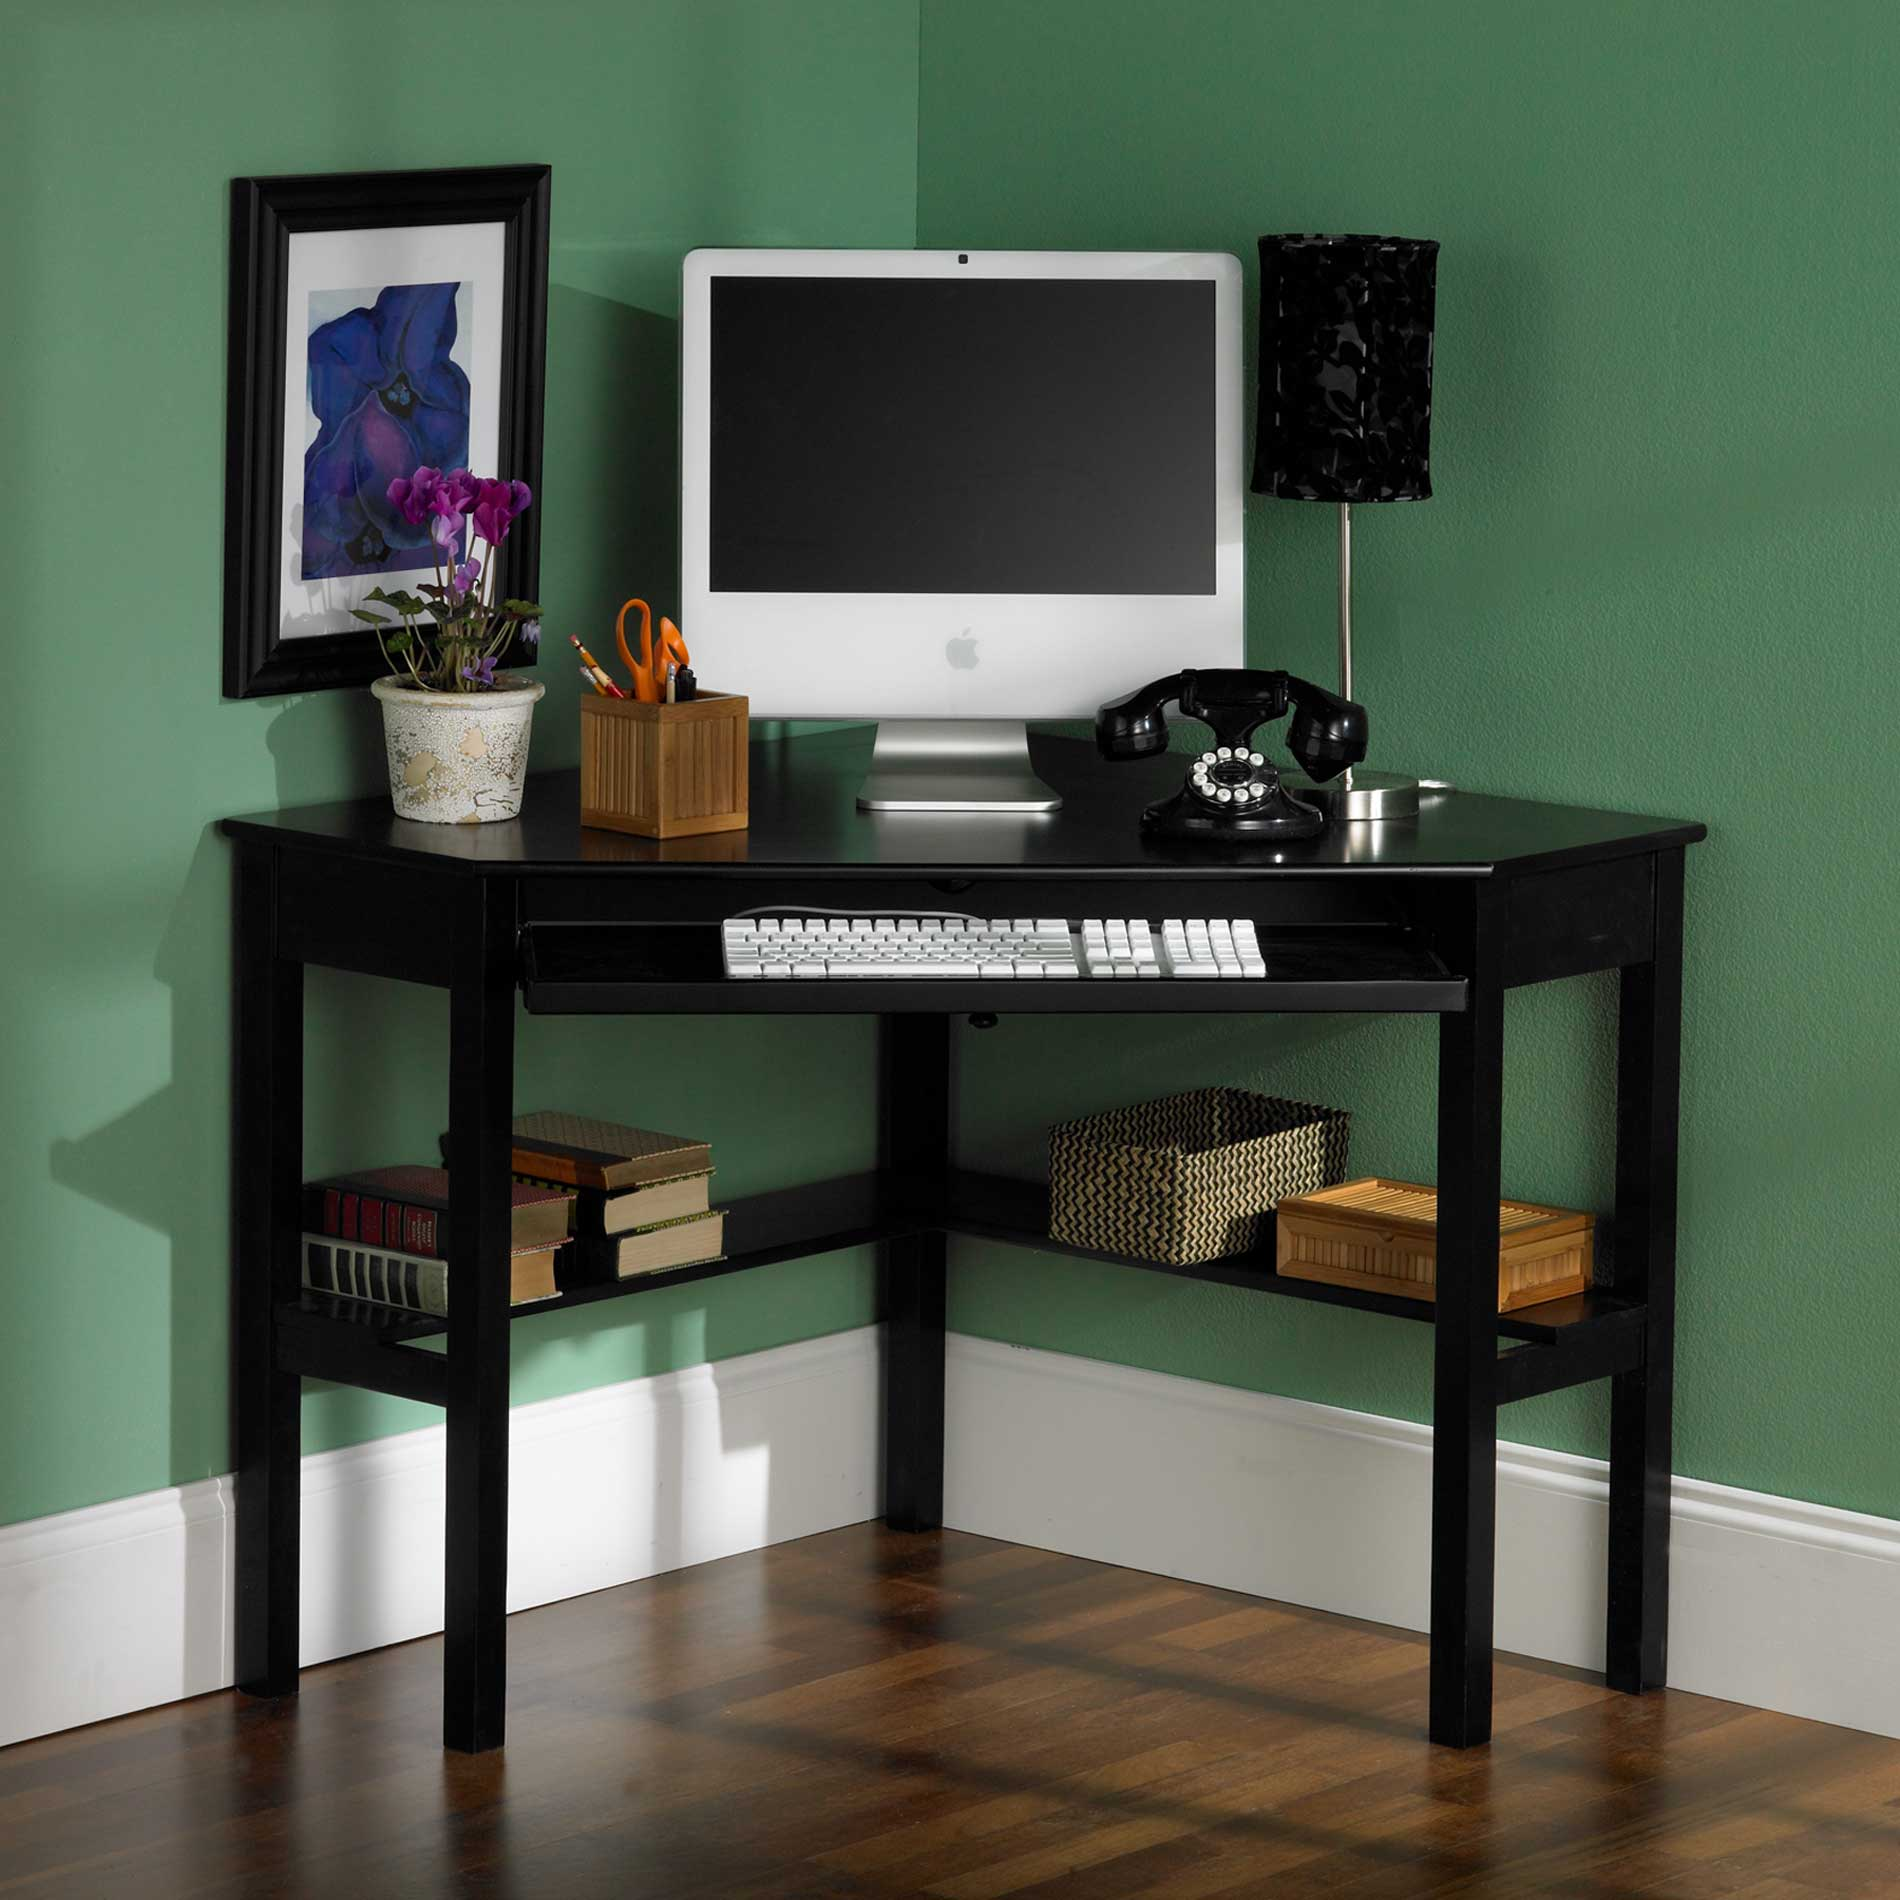 Small Black Corner Computer Desk 1900 x 1900